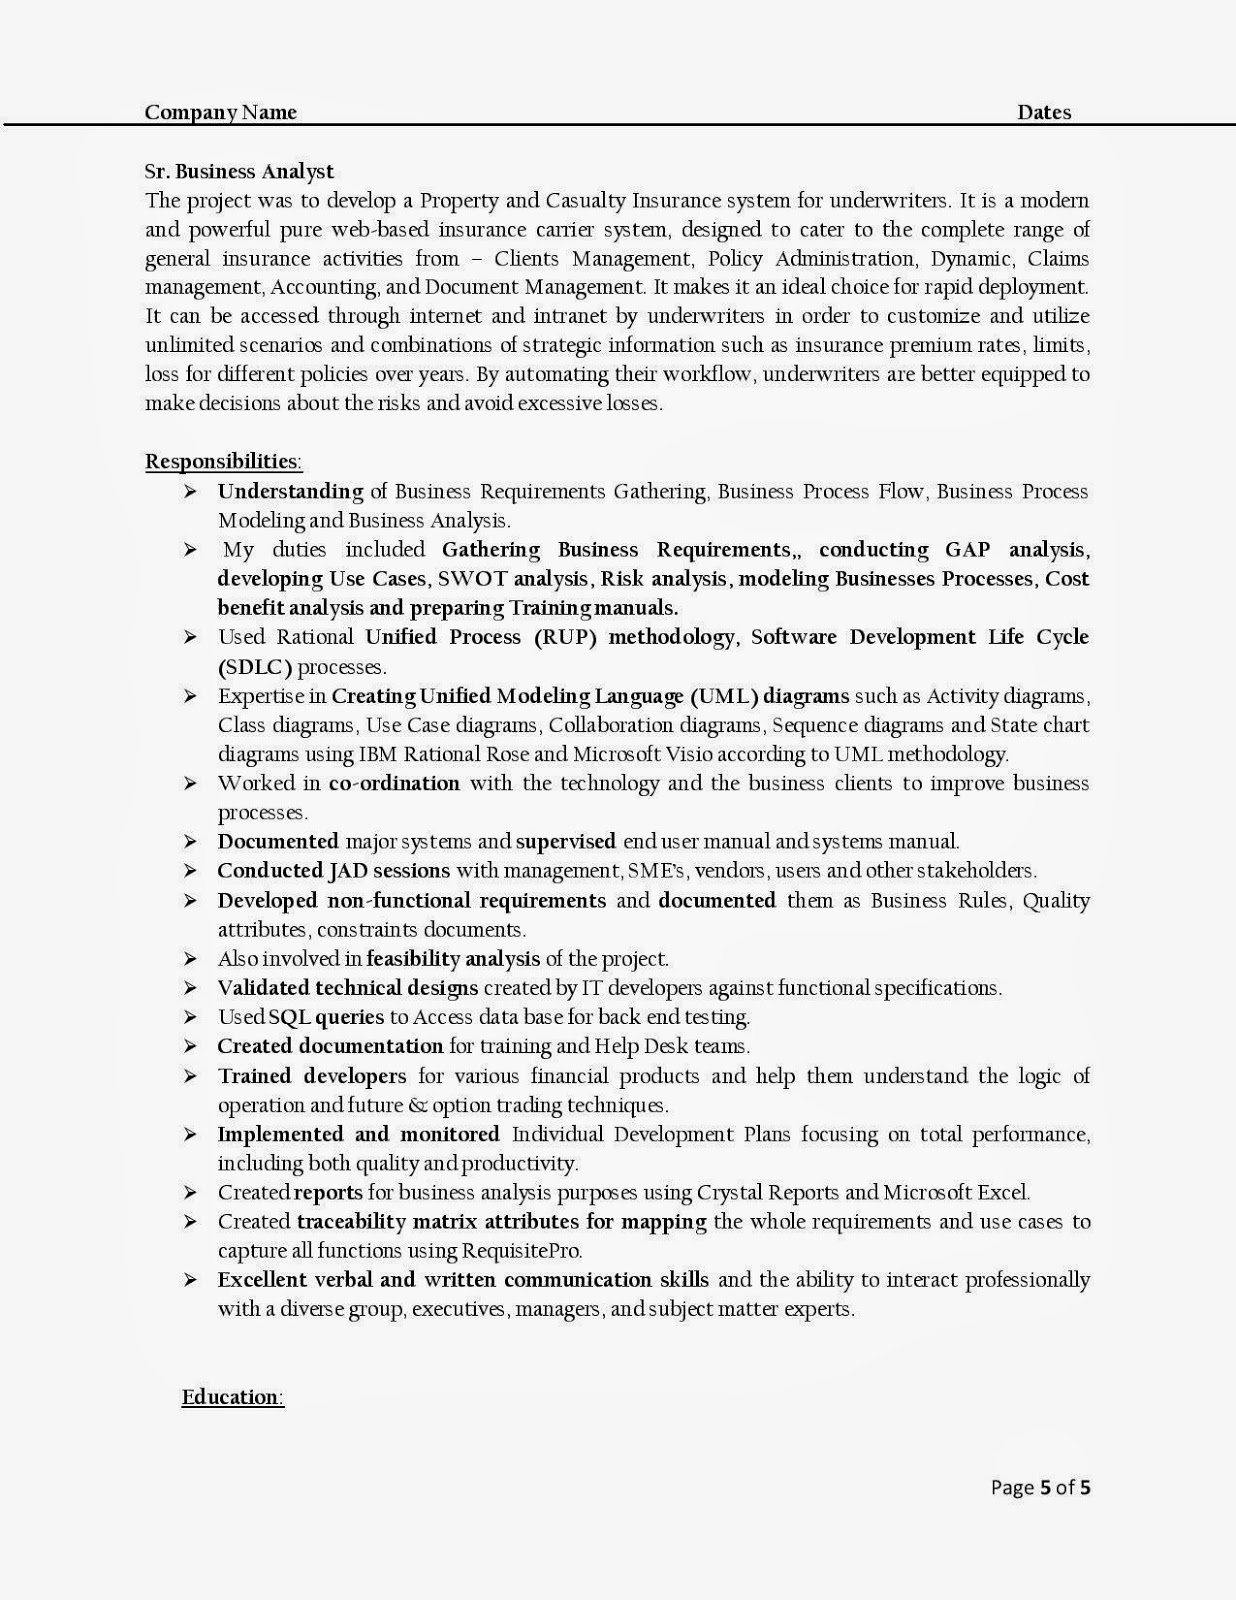 best sample resume for business analyst professional resume best sample resume for business analyst bsr resume sample library and more business analyst resumes